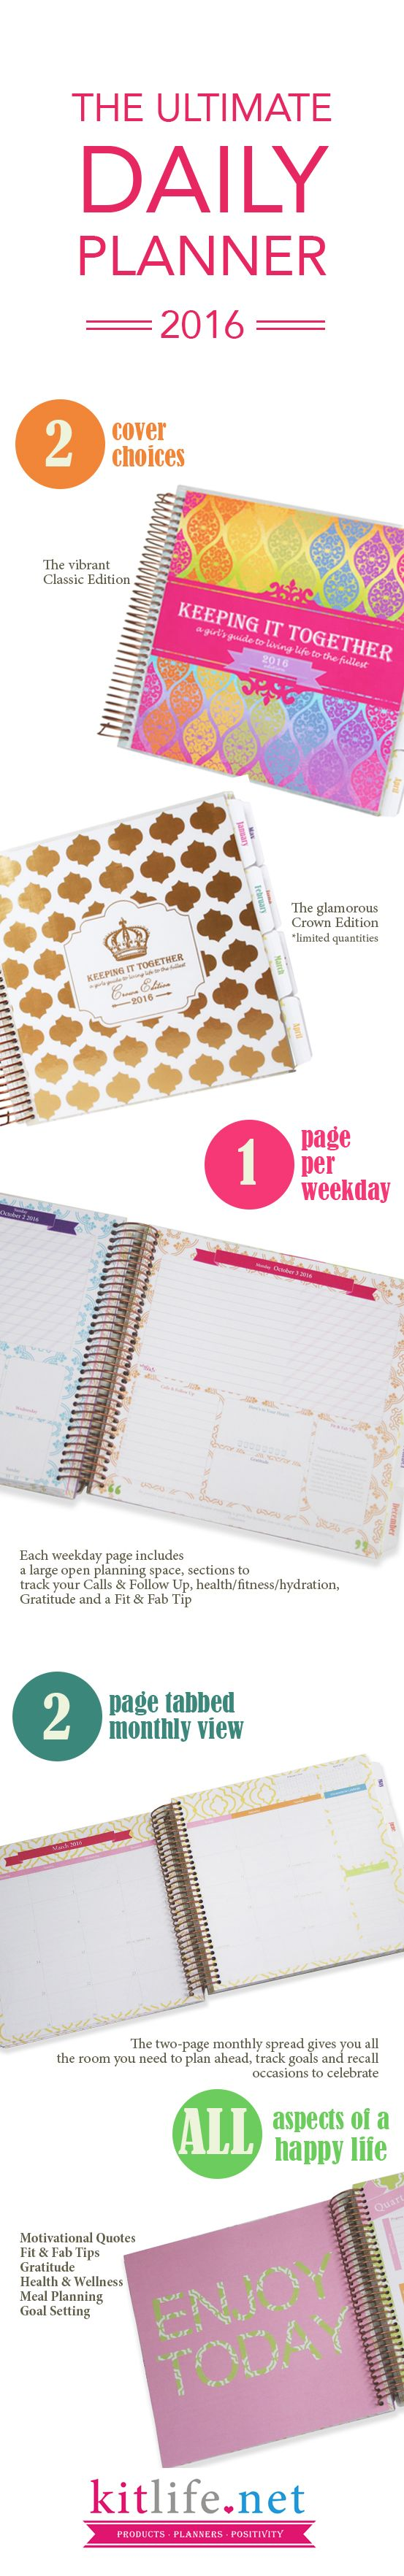 The BEST daily planner from kitlife.net